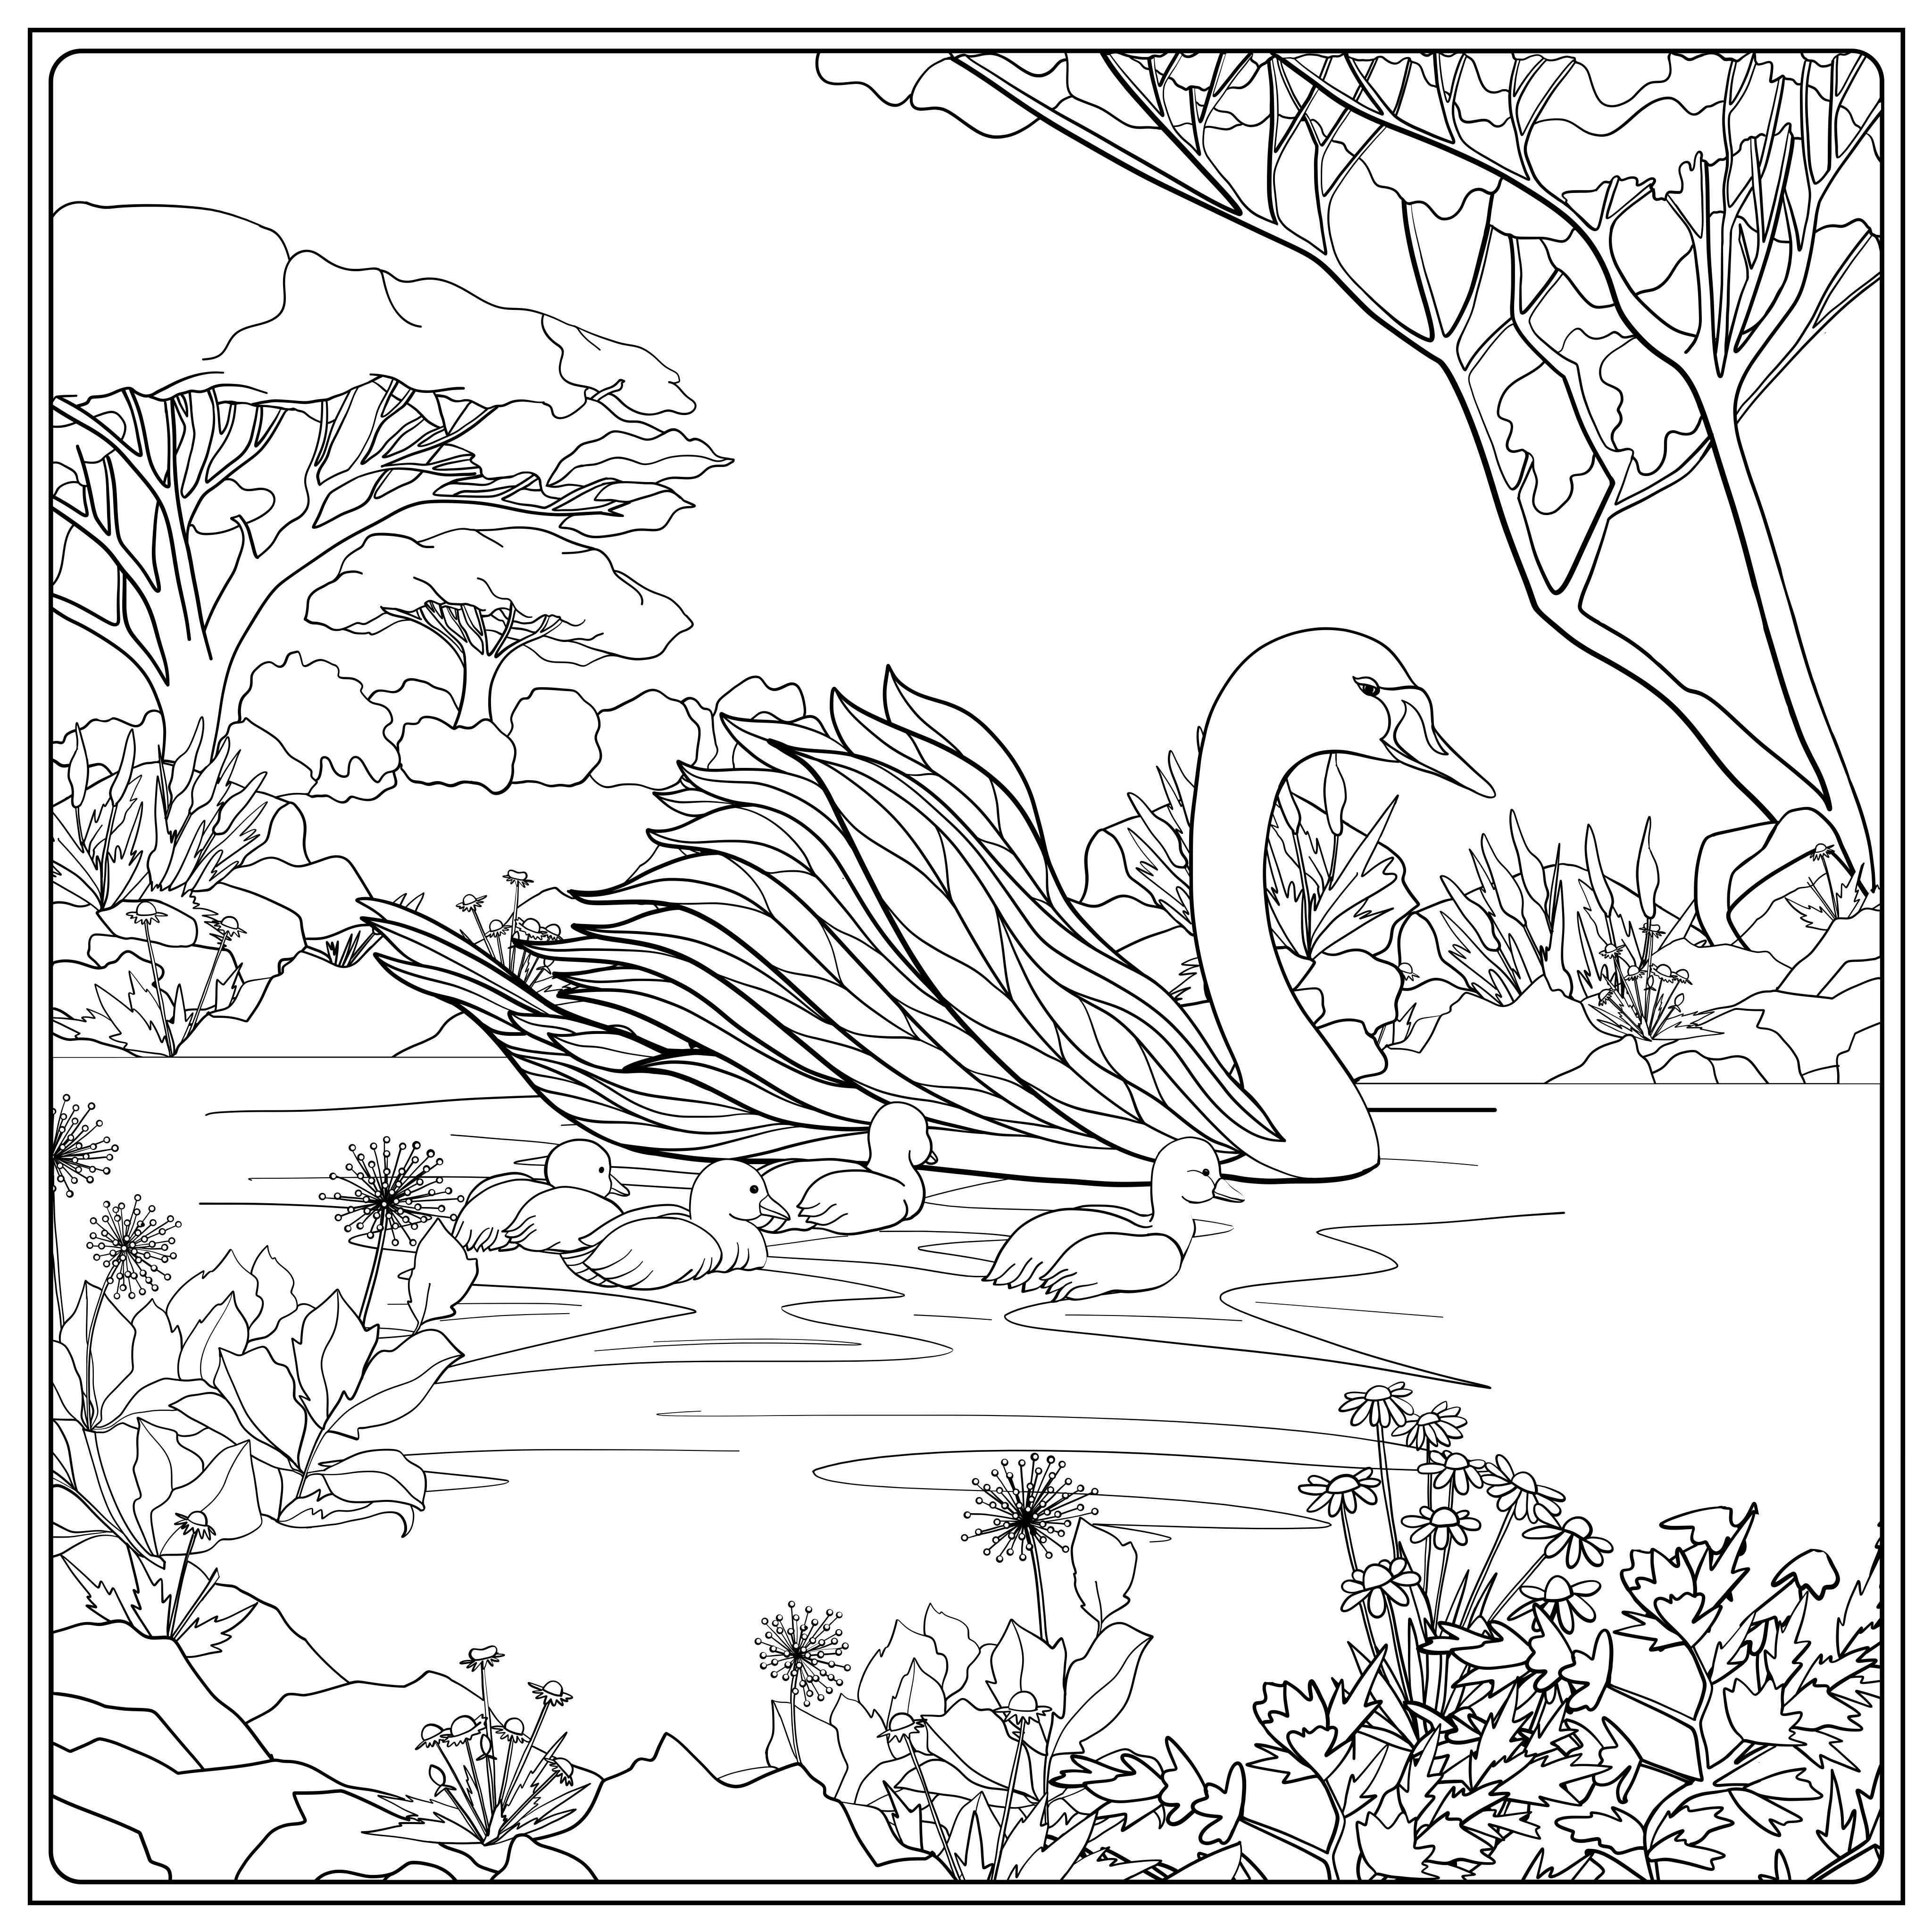 Just Colored This In Pigment Coloring Pages Bird Coloring Pages Coloring Books